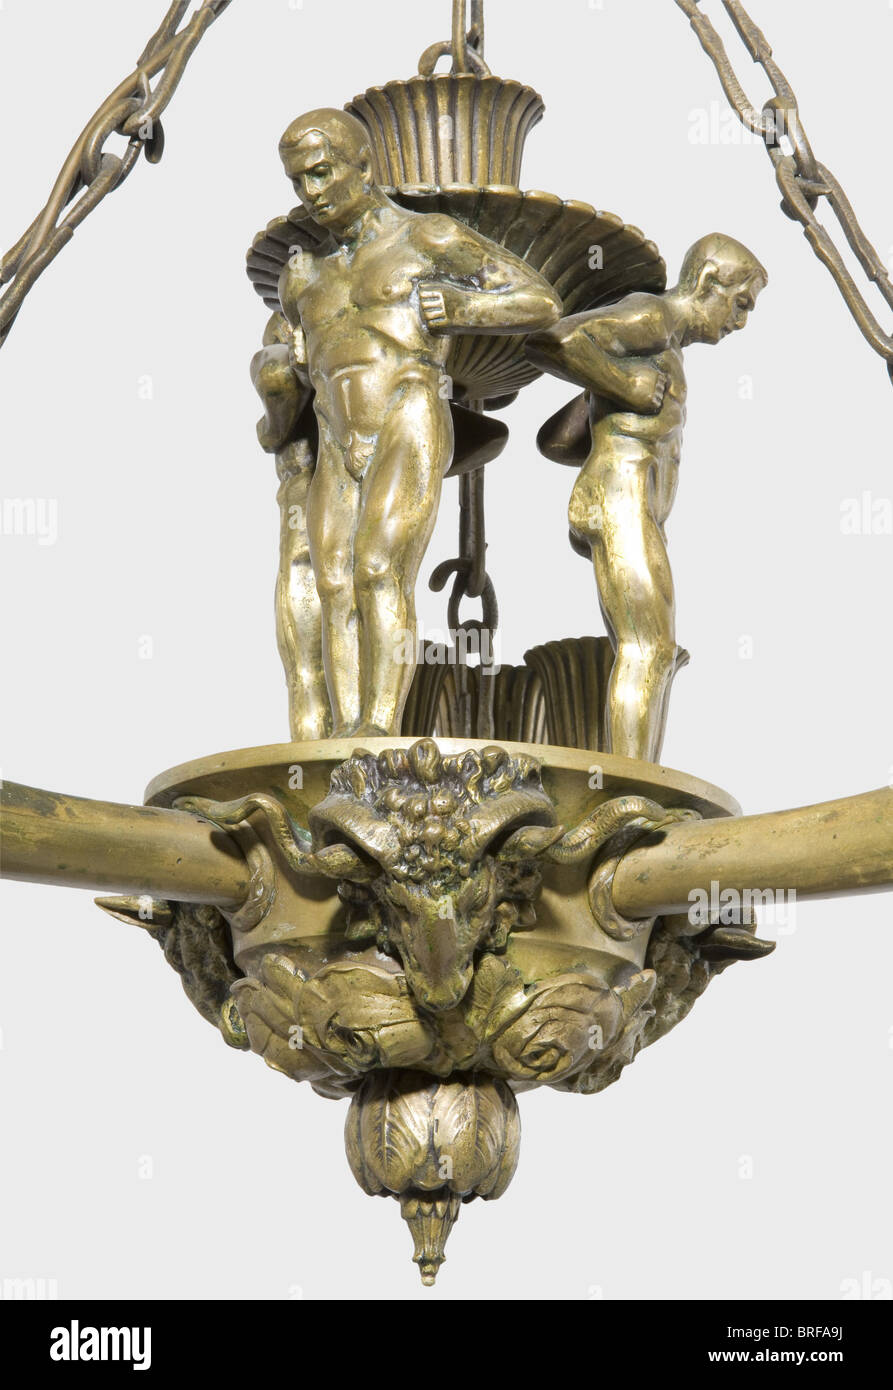 A bronze ceiling light., Three arms in cornucopia form with male heads in relief circumferentially around the rim Stock Photo